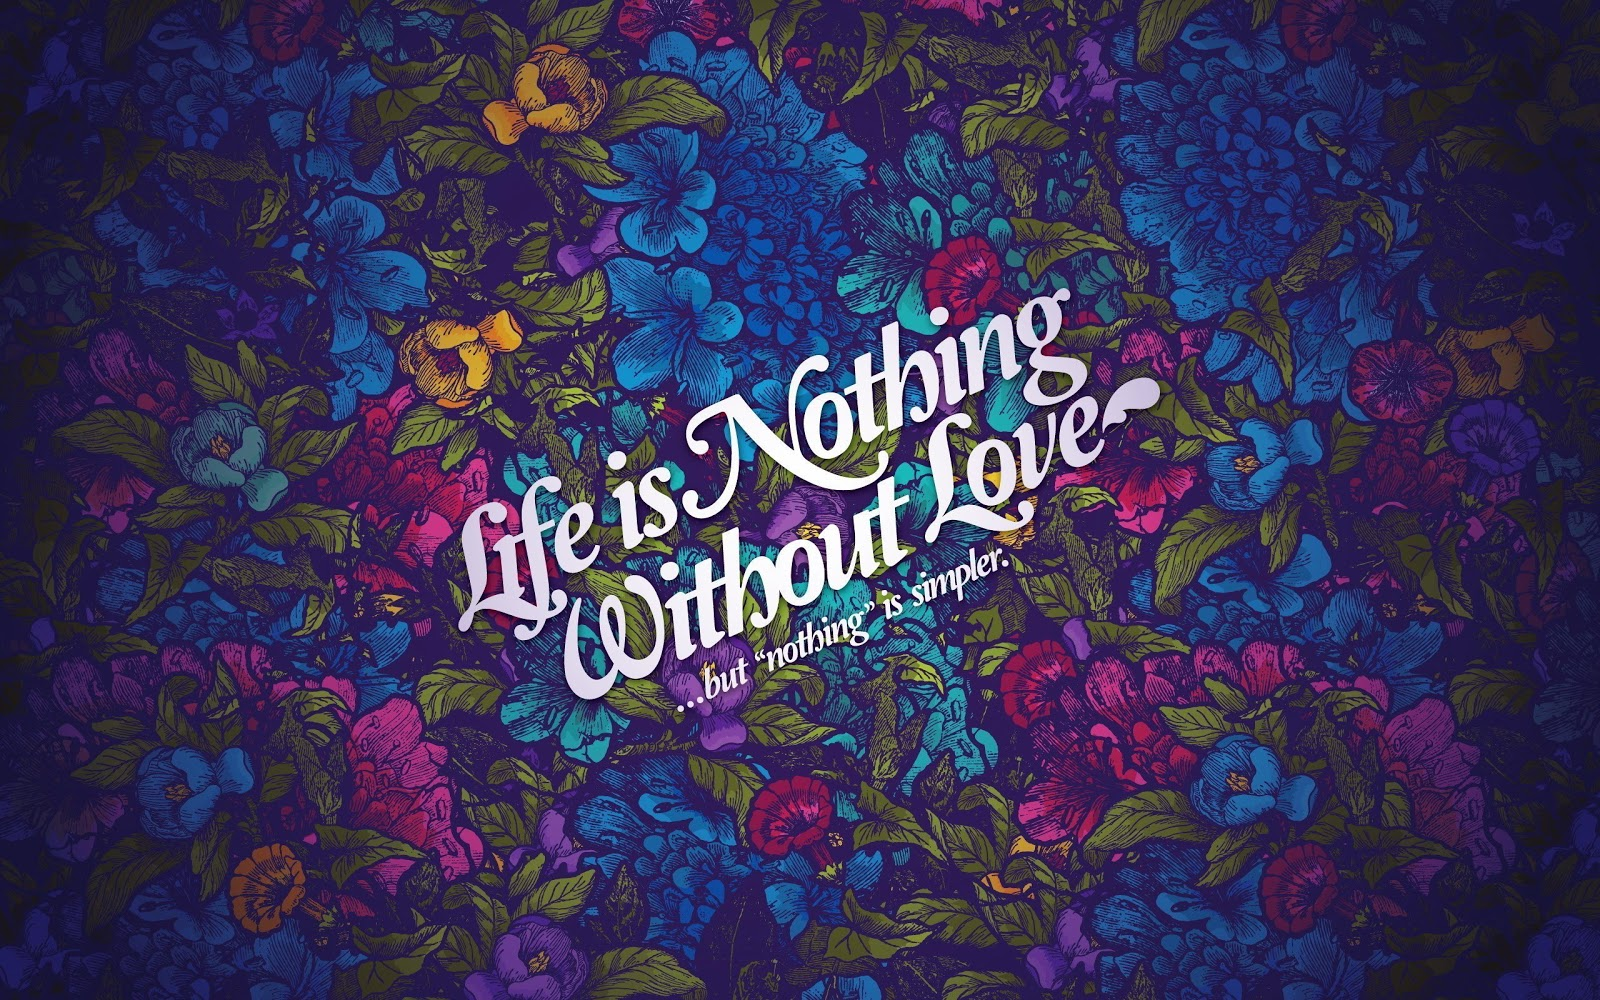 Download Cute Wallpapers For Pc Hd Wallpaper Download Love Hd Wallpapers Life Nothing